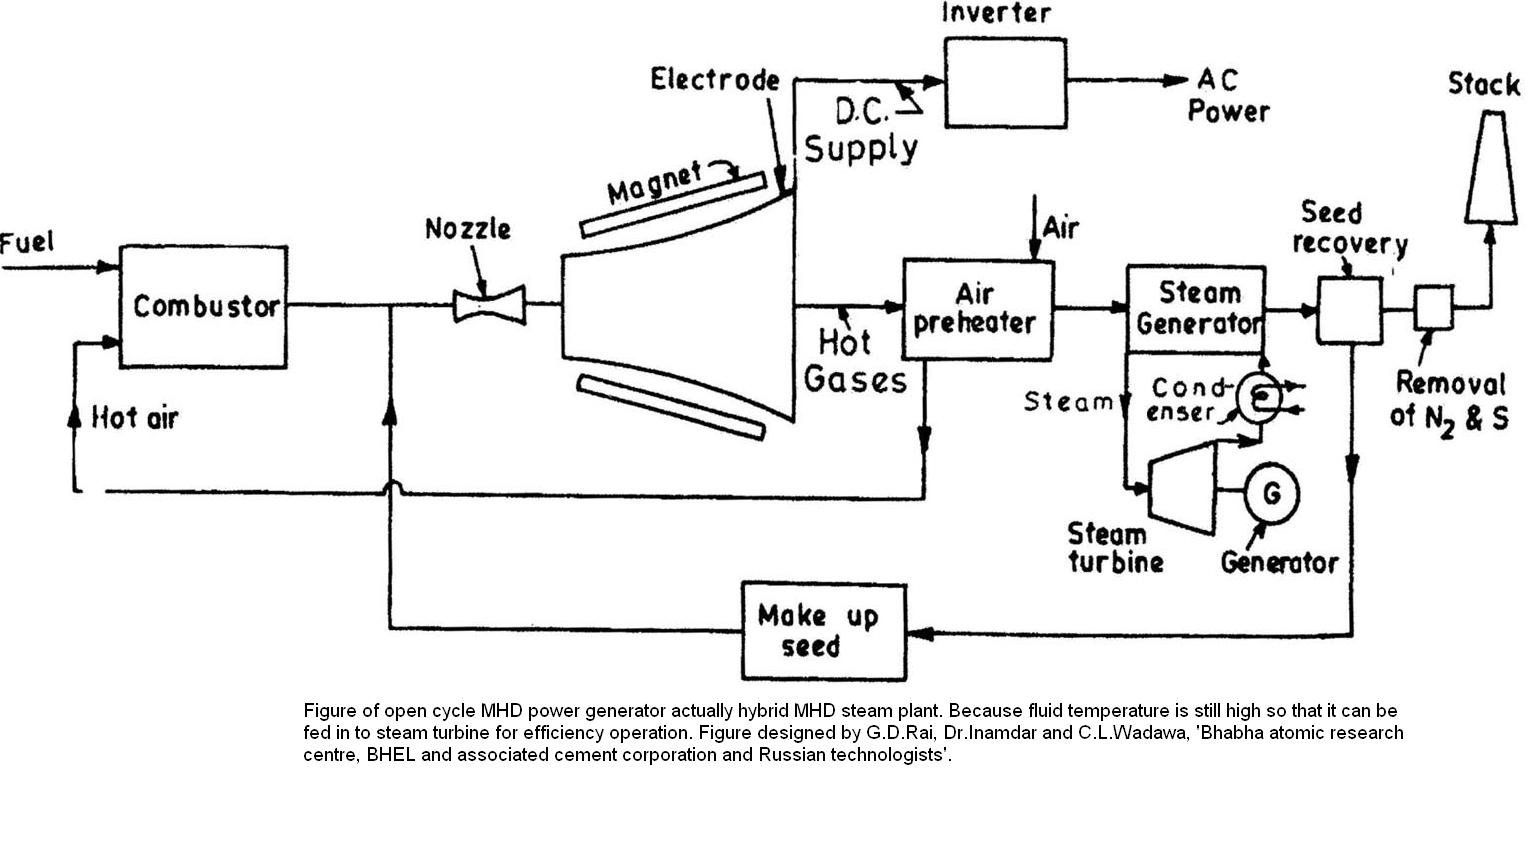 hight resolution of why use nozzle in an open mhd system quorain an open mhd generator the hot